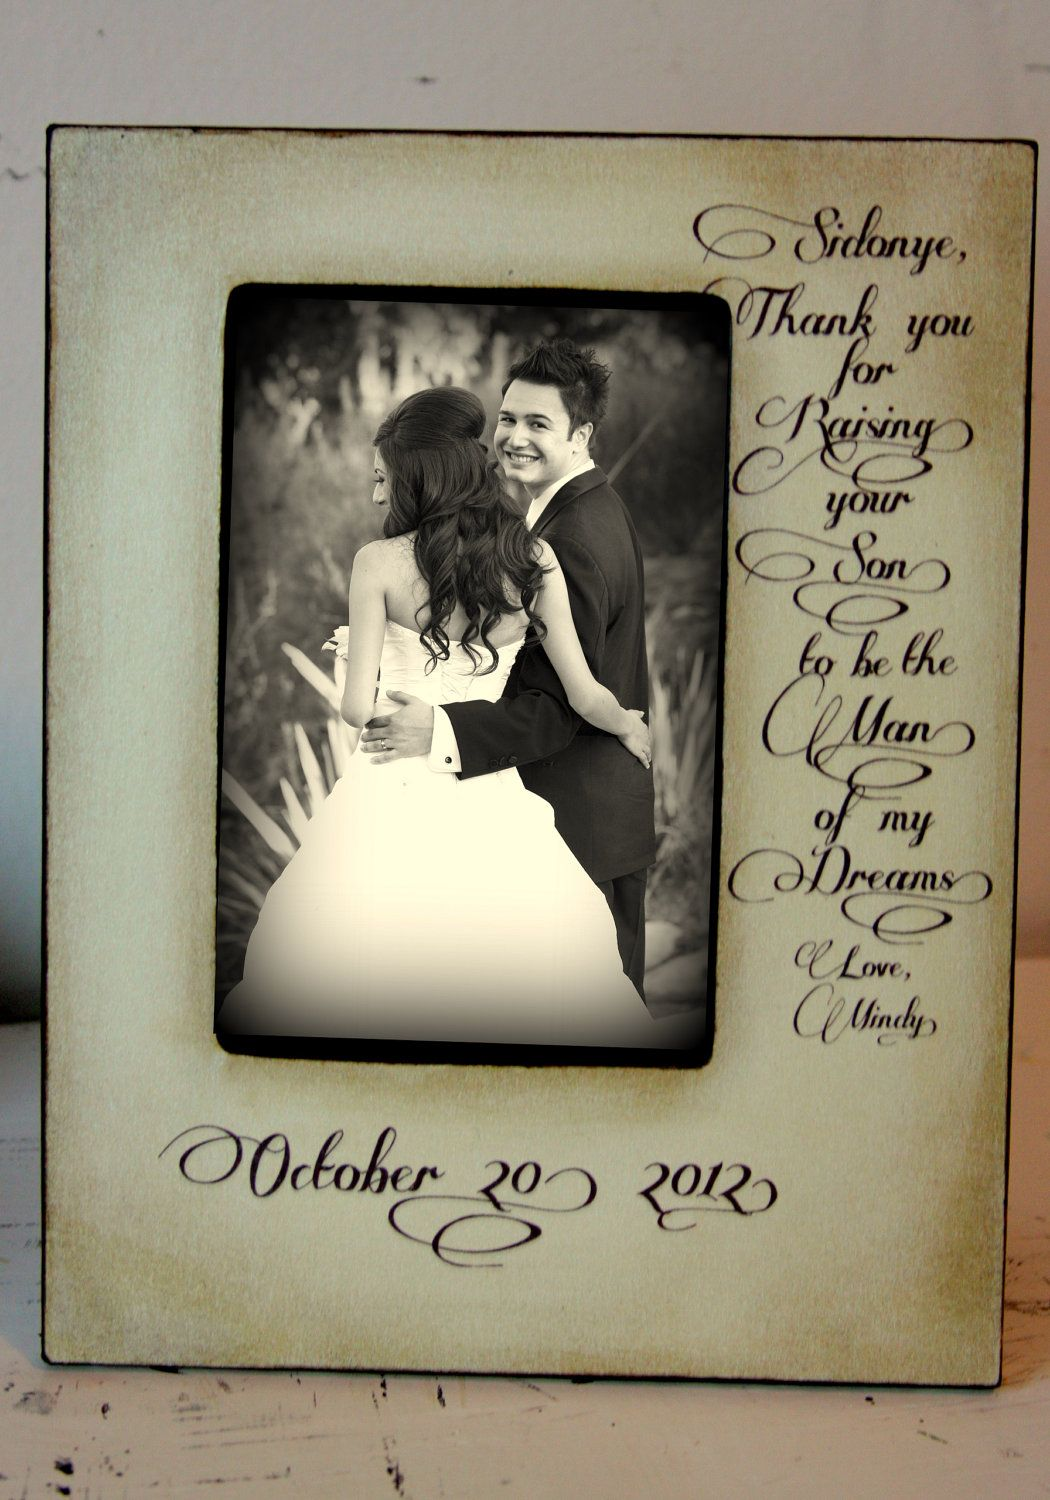 Wedding picture frame thank you for raising to be the man of my wedding picture frame thank you for raising to be the man of my dreams mother of the groom gift wedding 4x6 picture frame keepsake 5x7 jeuxipadfo Choice Image